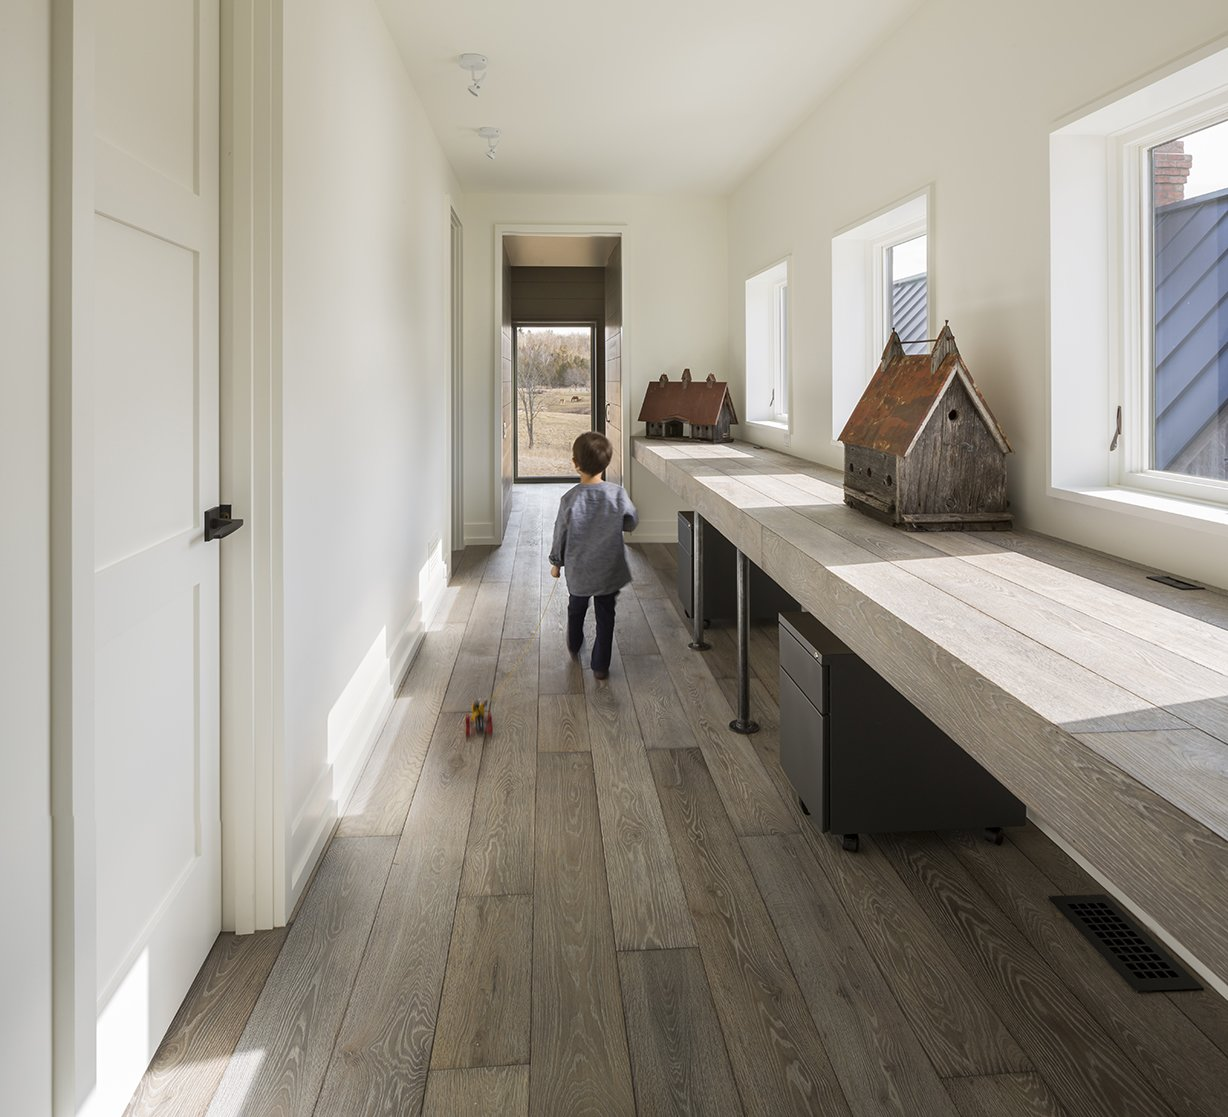 Antique-looking birdhouses are displayed in a hallway office space upstairs. - North Hatley, Quebec Dwell Magazine : July / August 2017 Tagged: Hallway and Medium Hardwood Floor.  Photo 10 of 12 in An Artist and Farmer Work With a Toronto-Based Studio to Build a Barn-Inspired Home